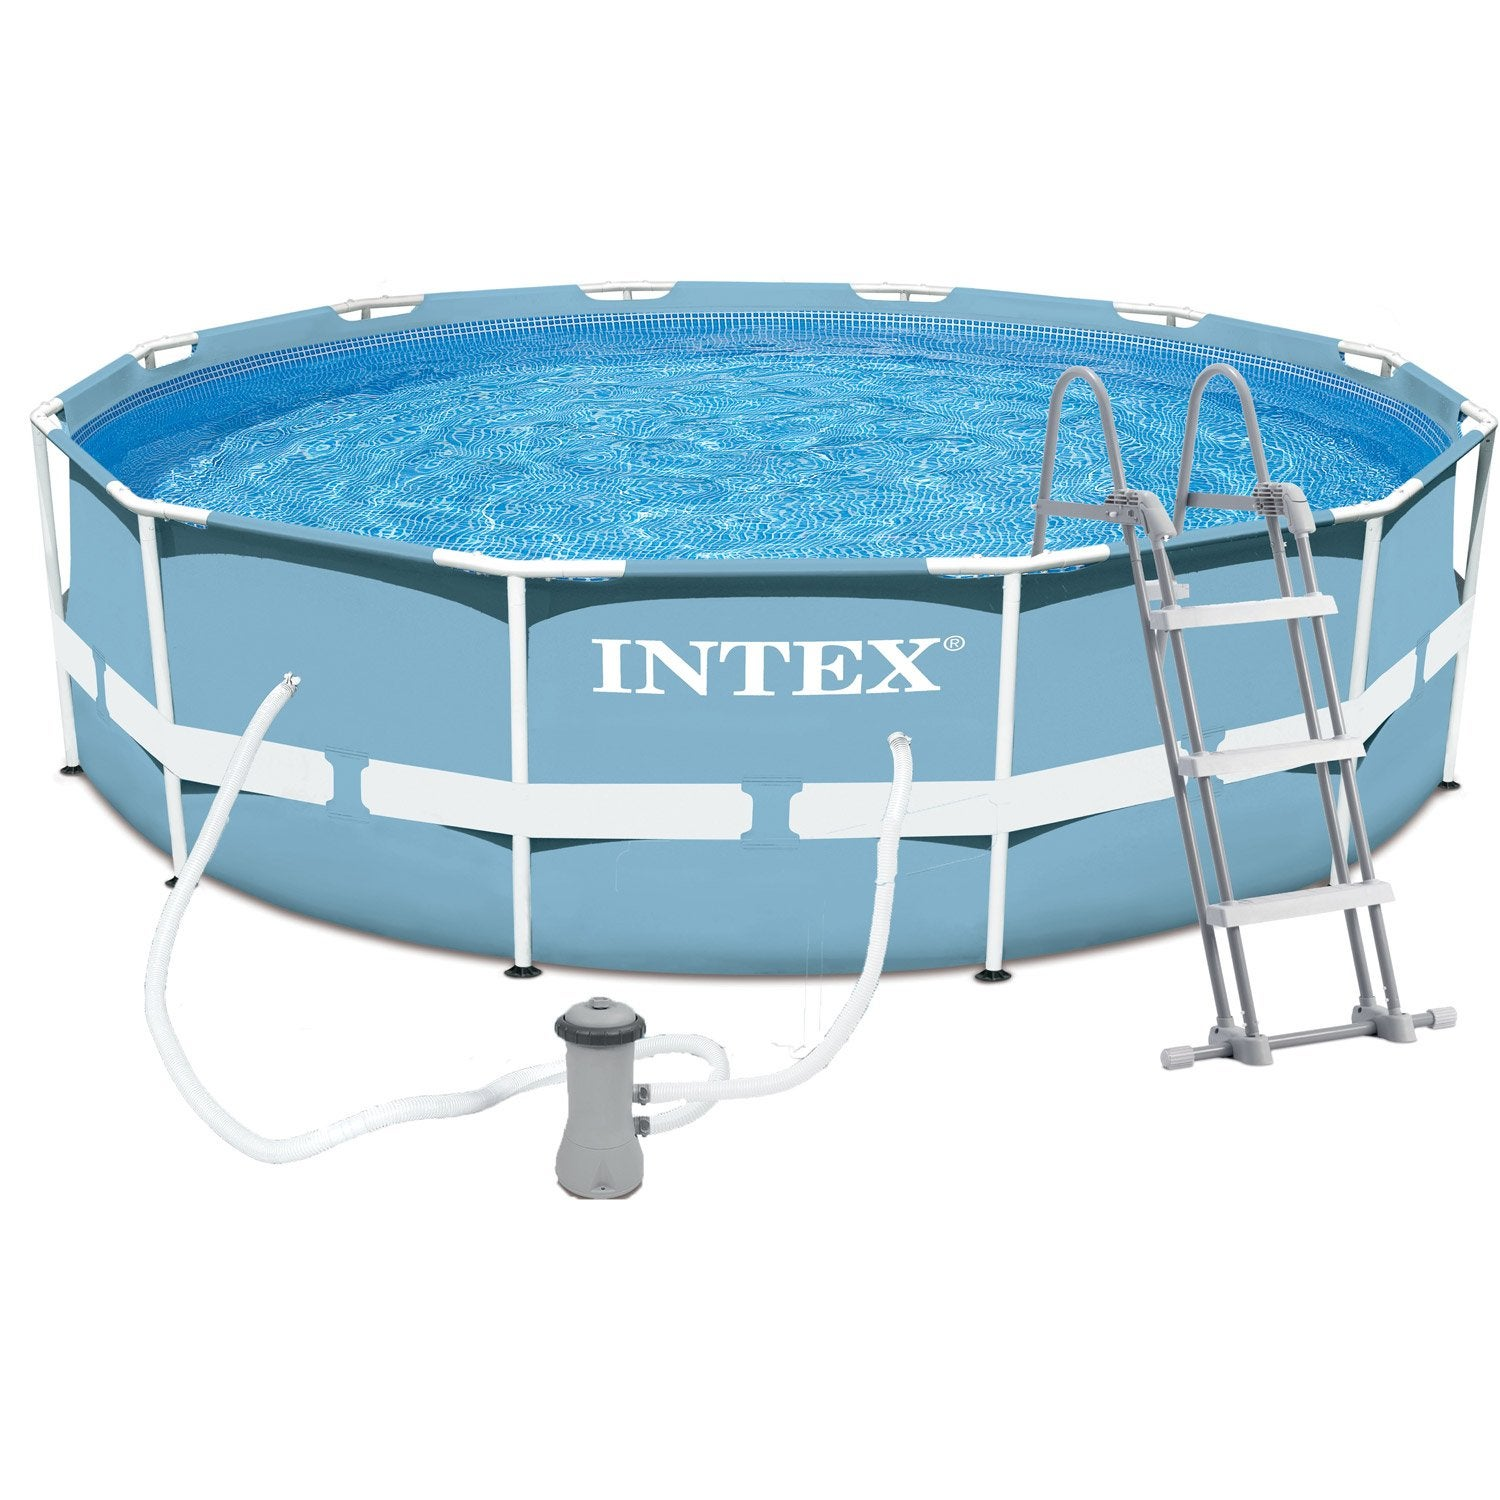 Piscine hors sol autoportante tubulaire prism frame intex for Piscine hors sol 4mx3m